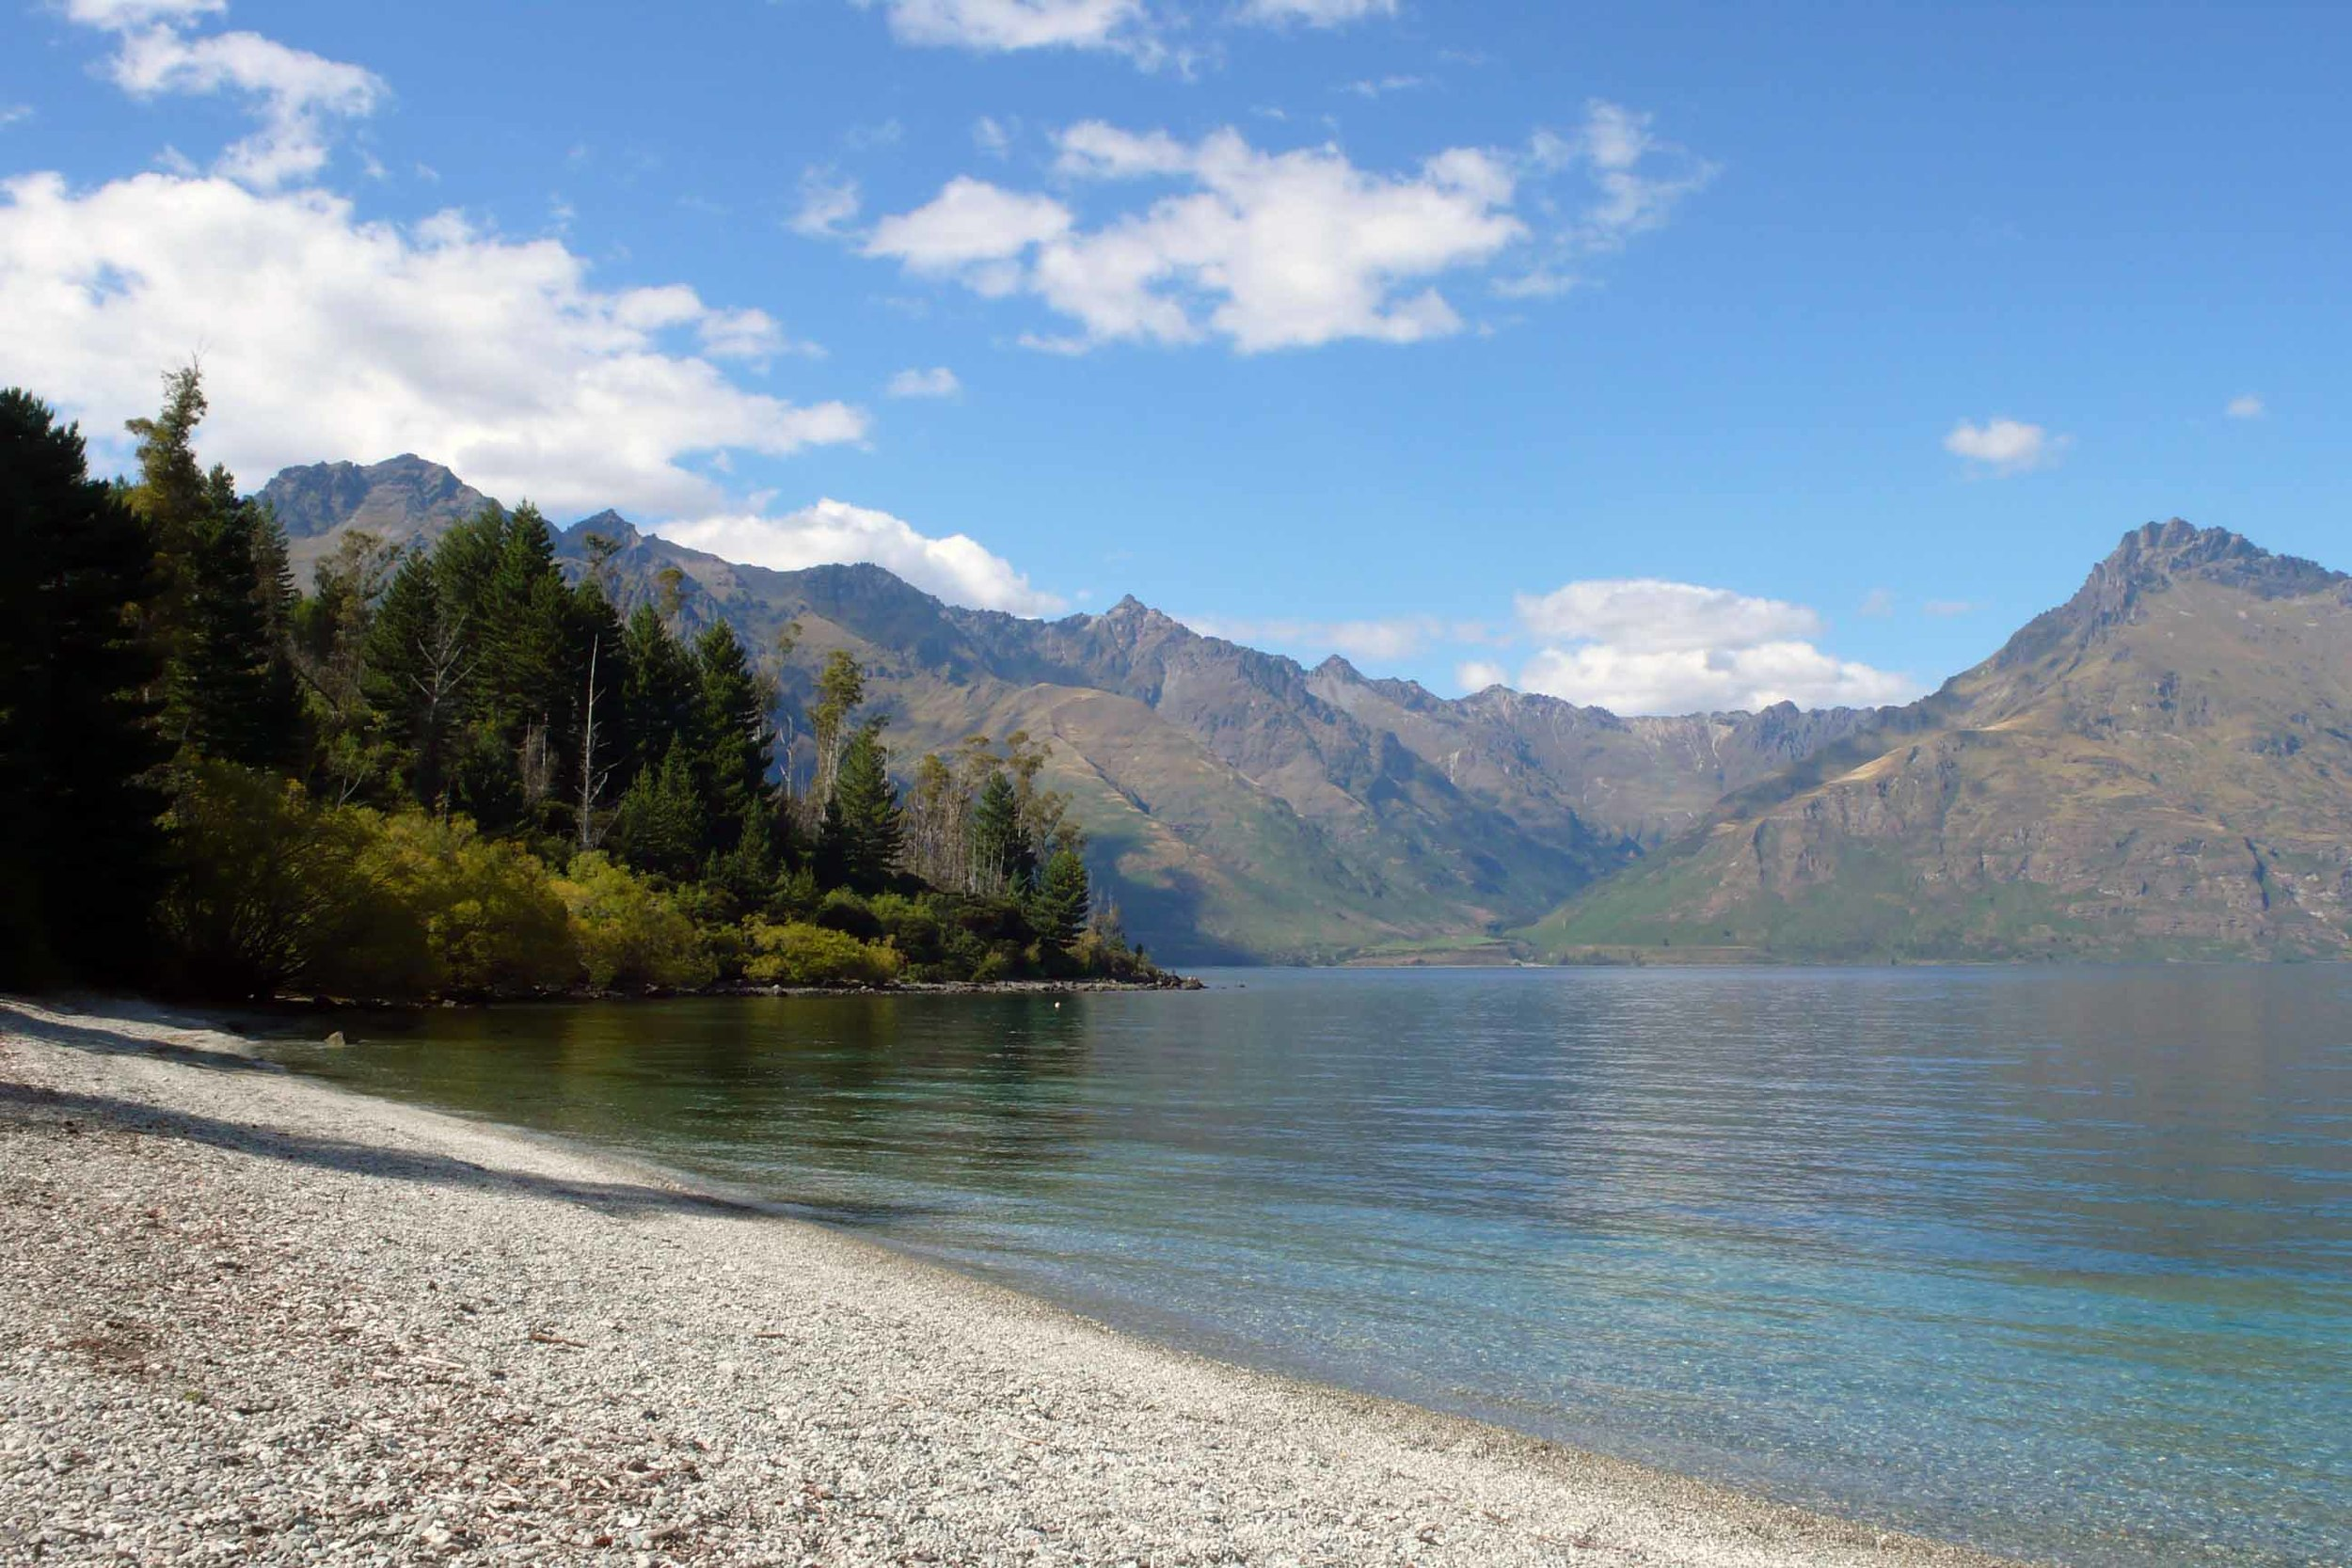 3_lake-shore-new-zealand.jpg